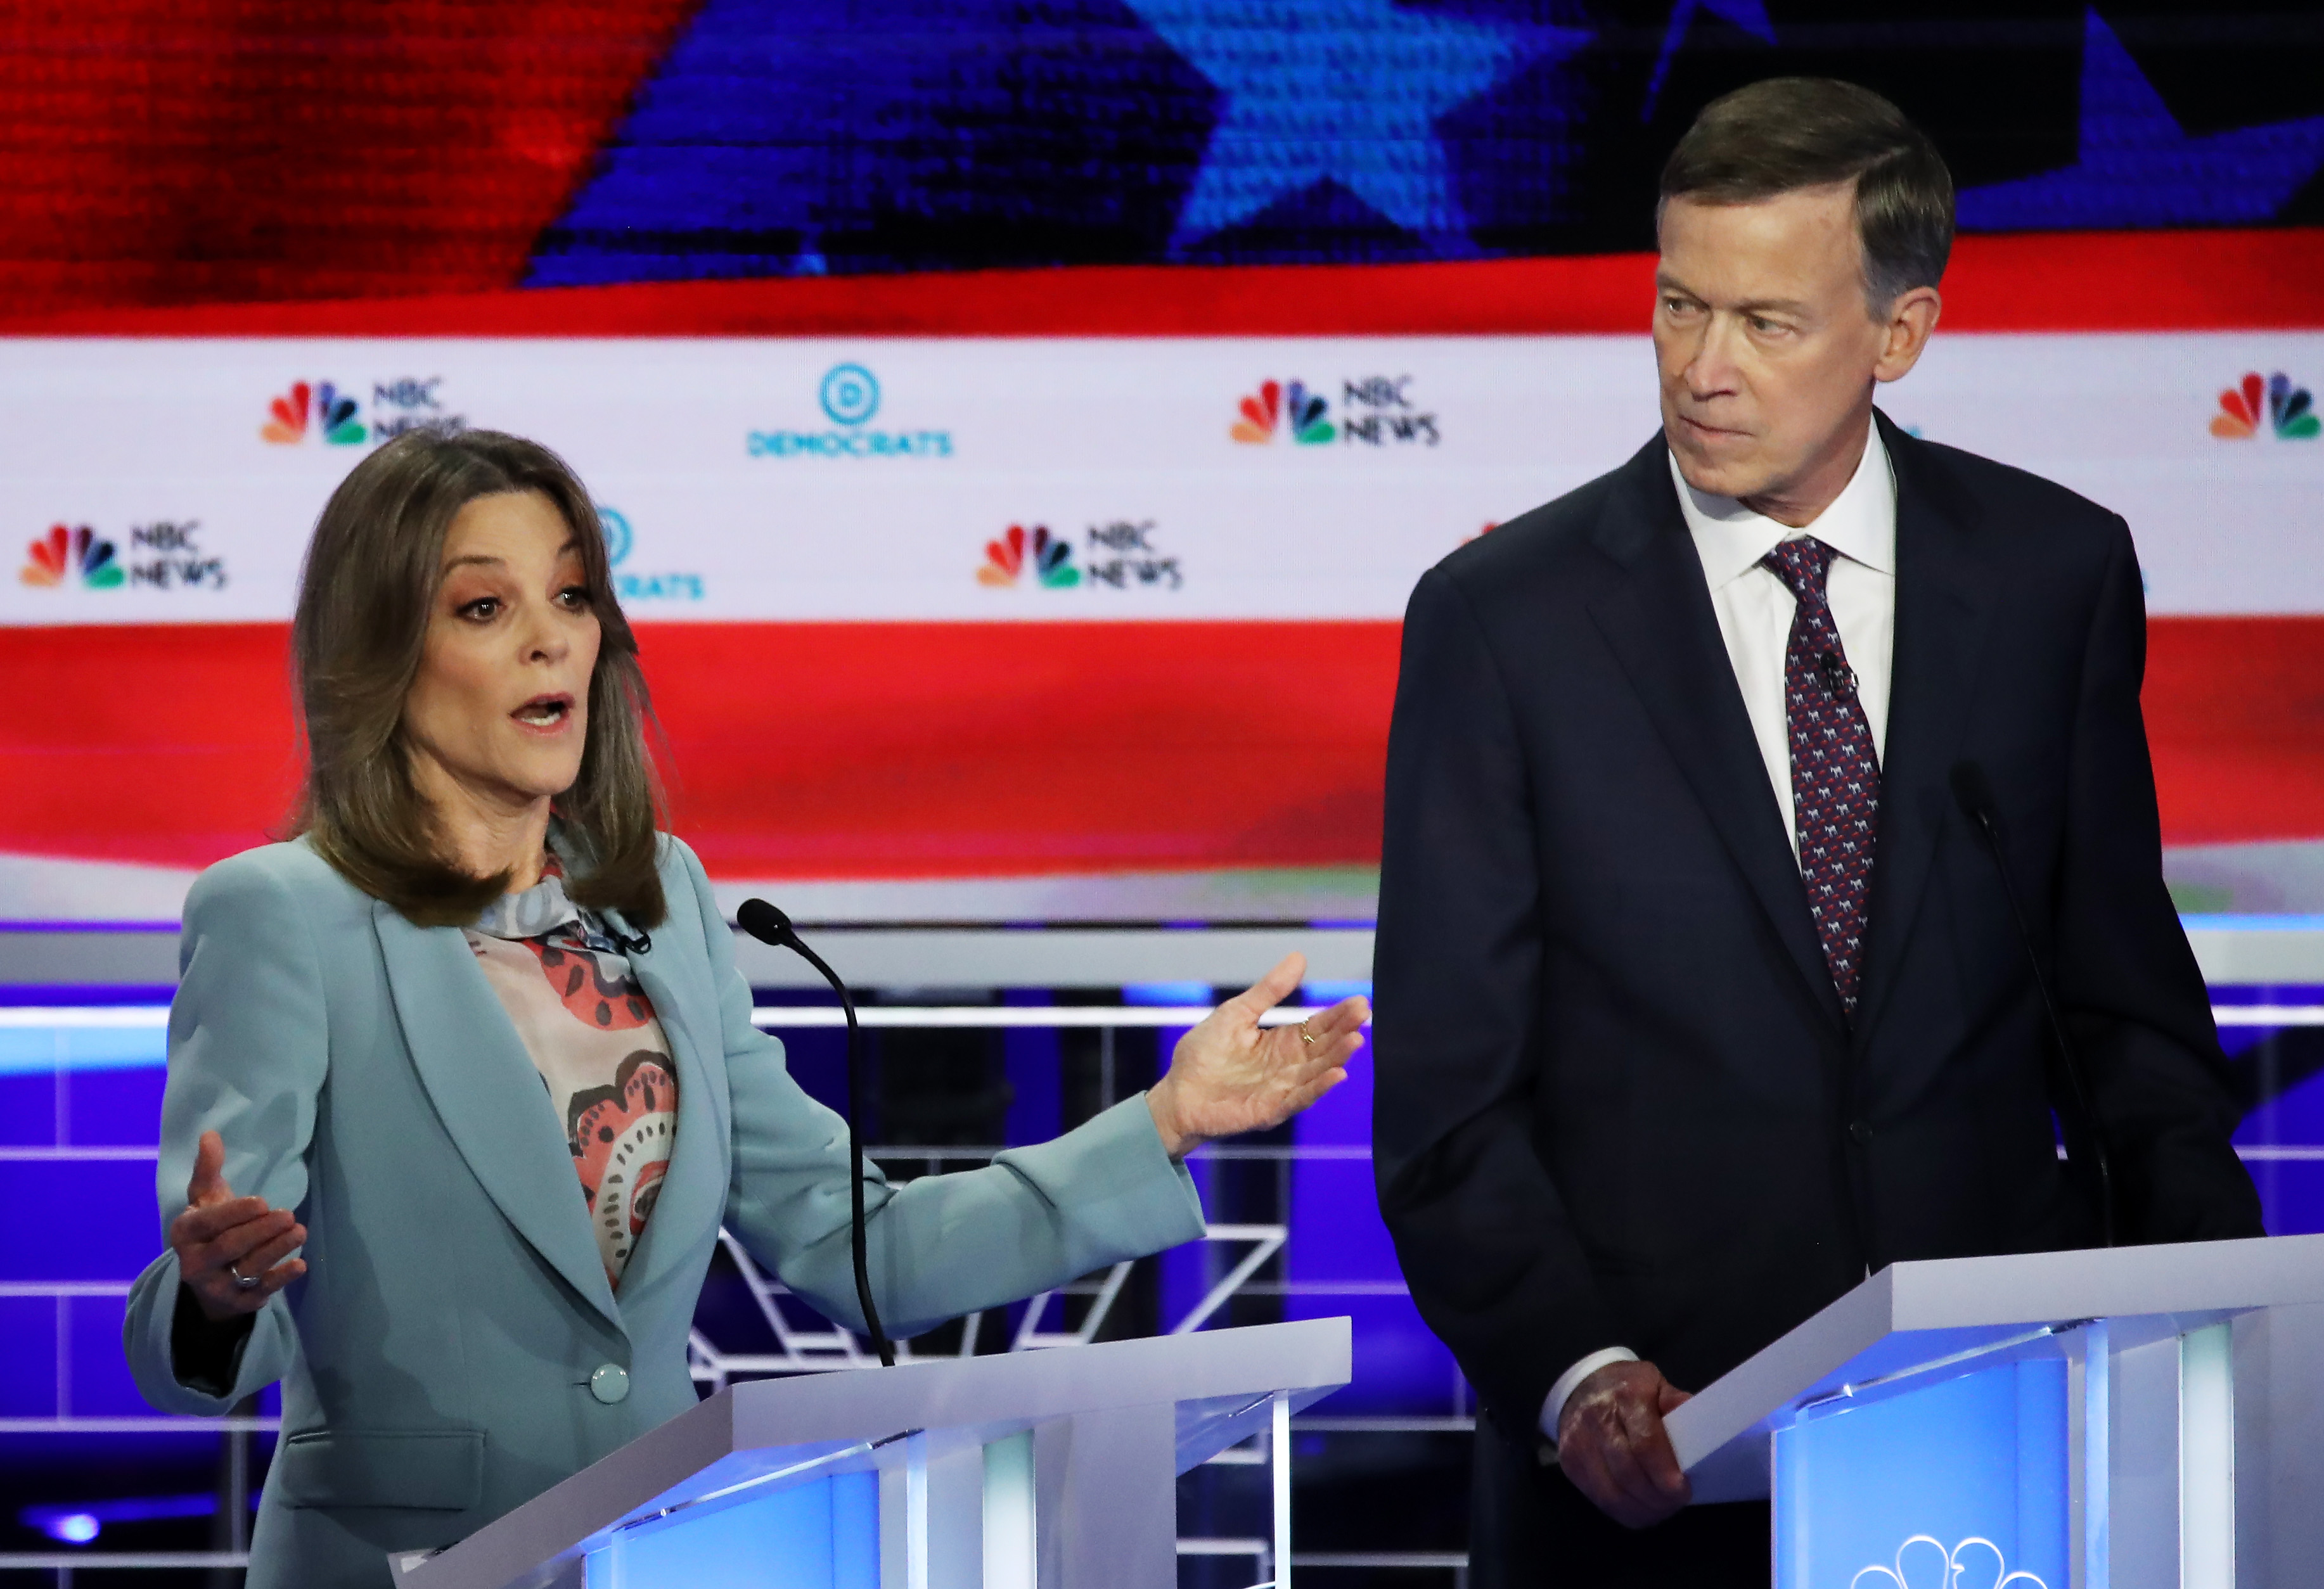 Marianne Williamson's highlights at the Democratic debate - Vox